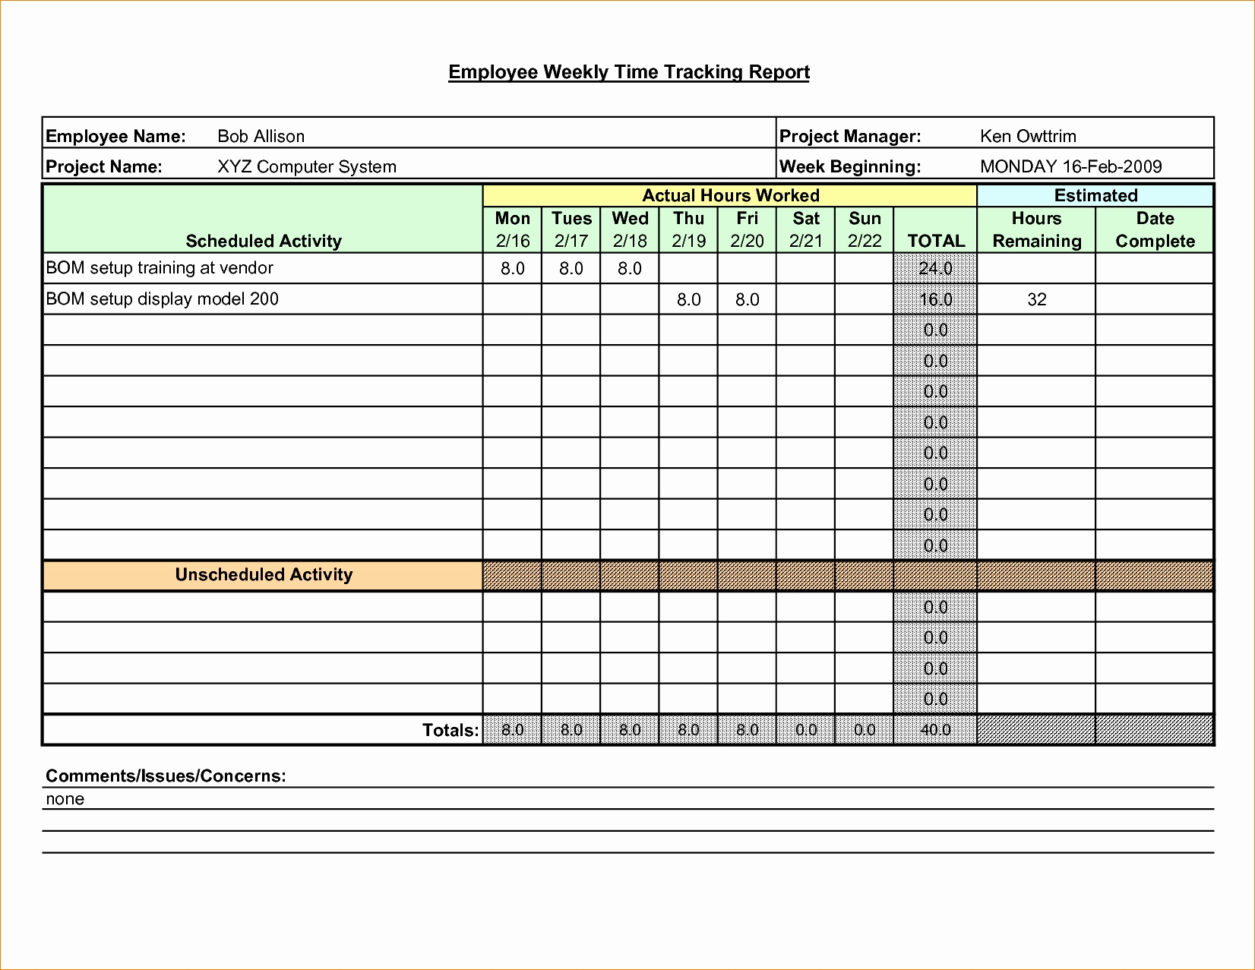 Employee Referral Tracking Spreadsheet Regarding 50 Awesome Employee Relations Tracking Template  Document Ideas